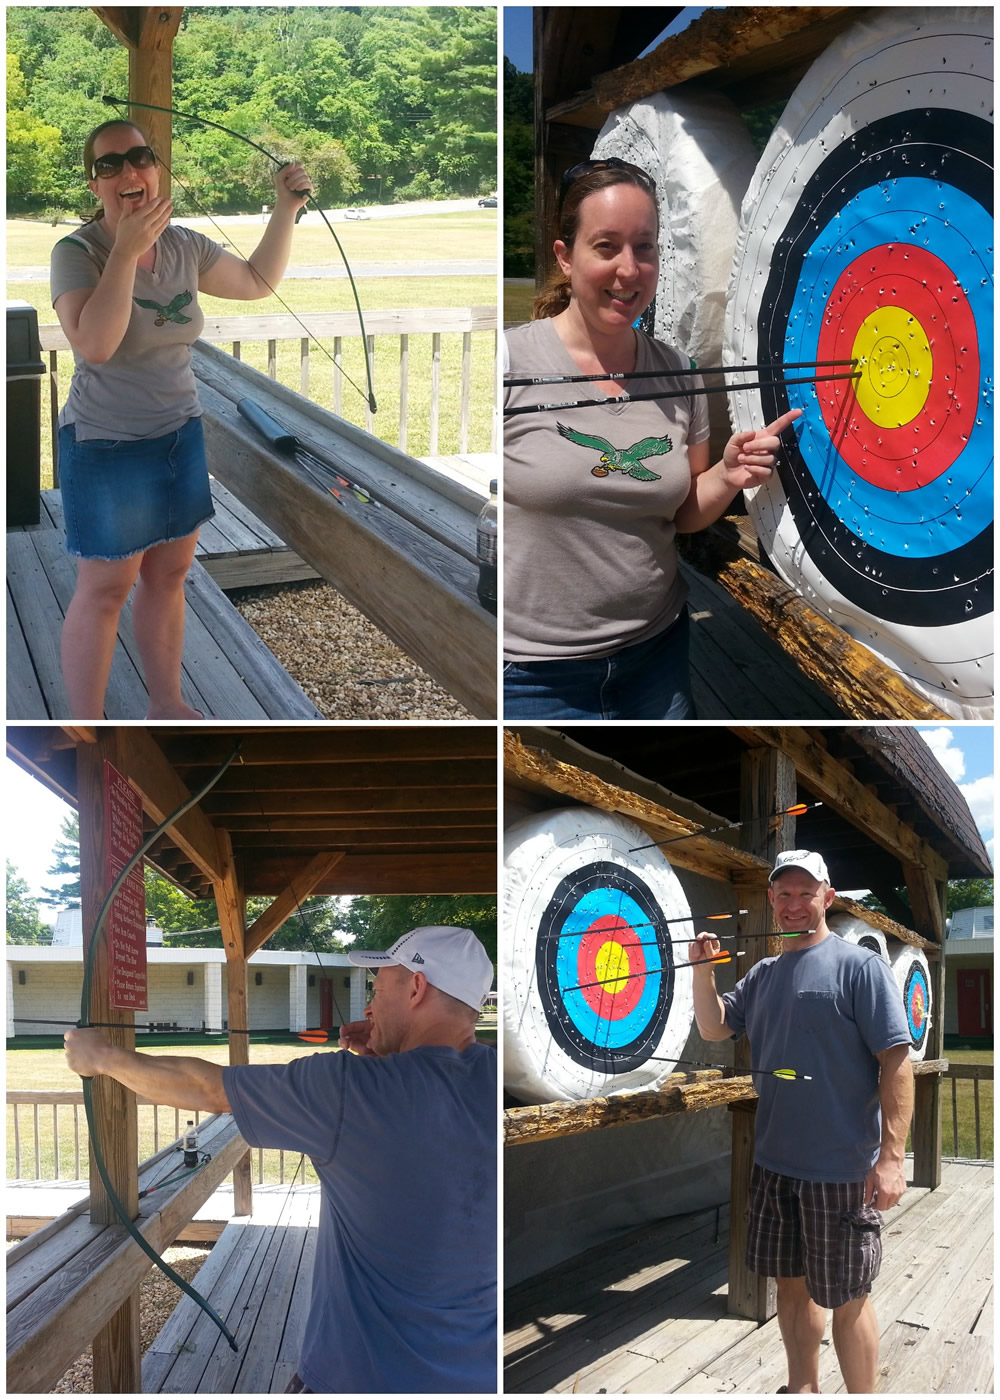 Fun with archery at the #landoflove #poconoromance #ad